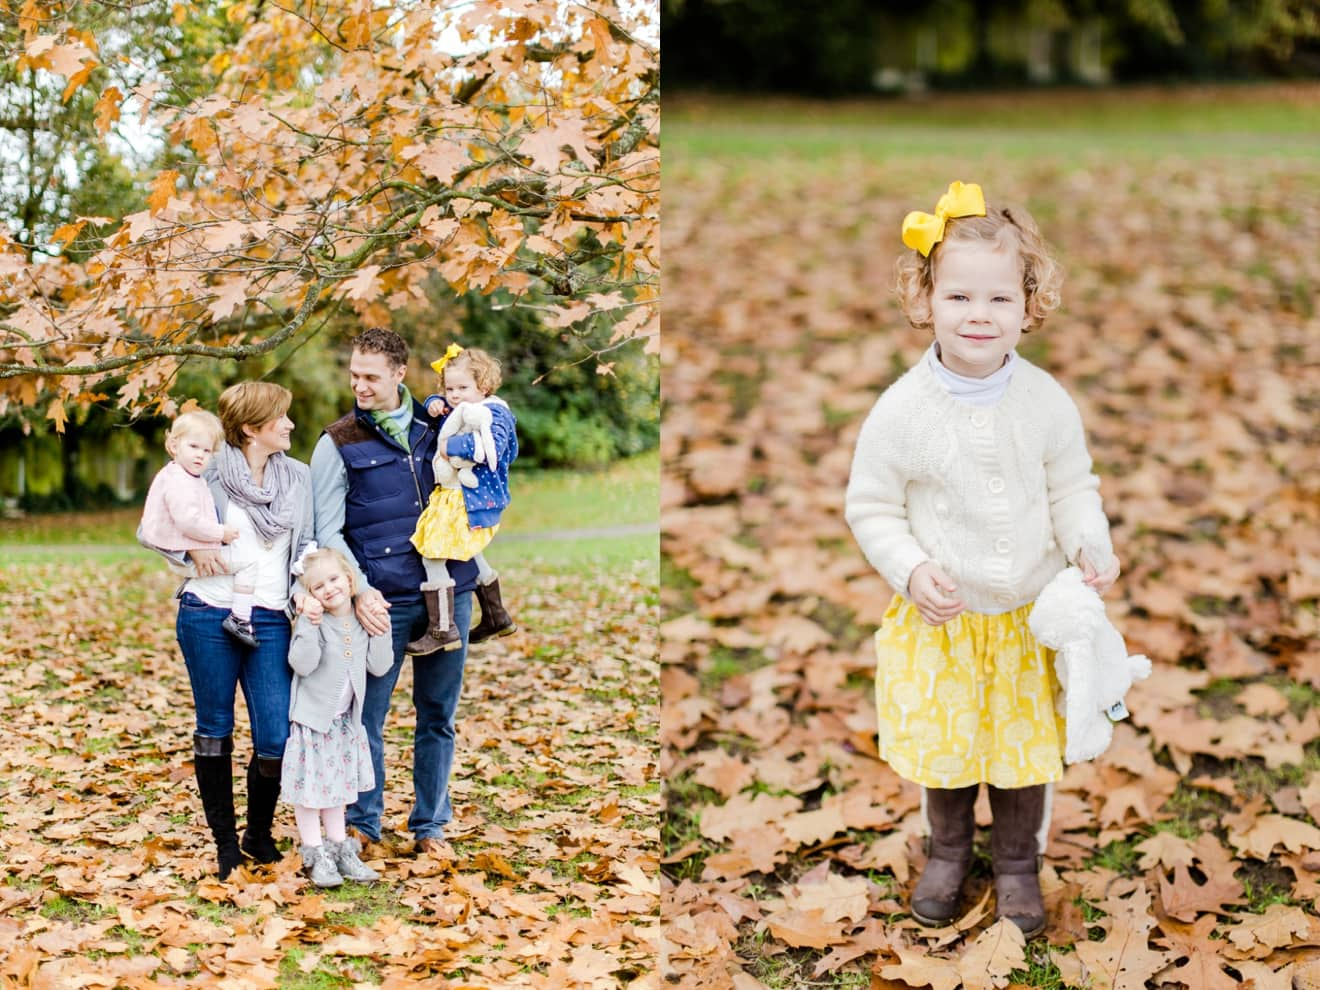 autumn-mini-portrait-sessions-surrey-weybridge-cobham-eddie-judd-family-photographer_0004